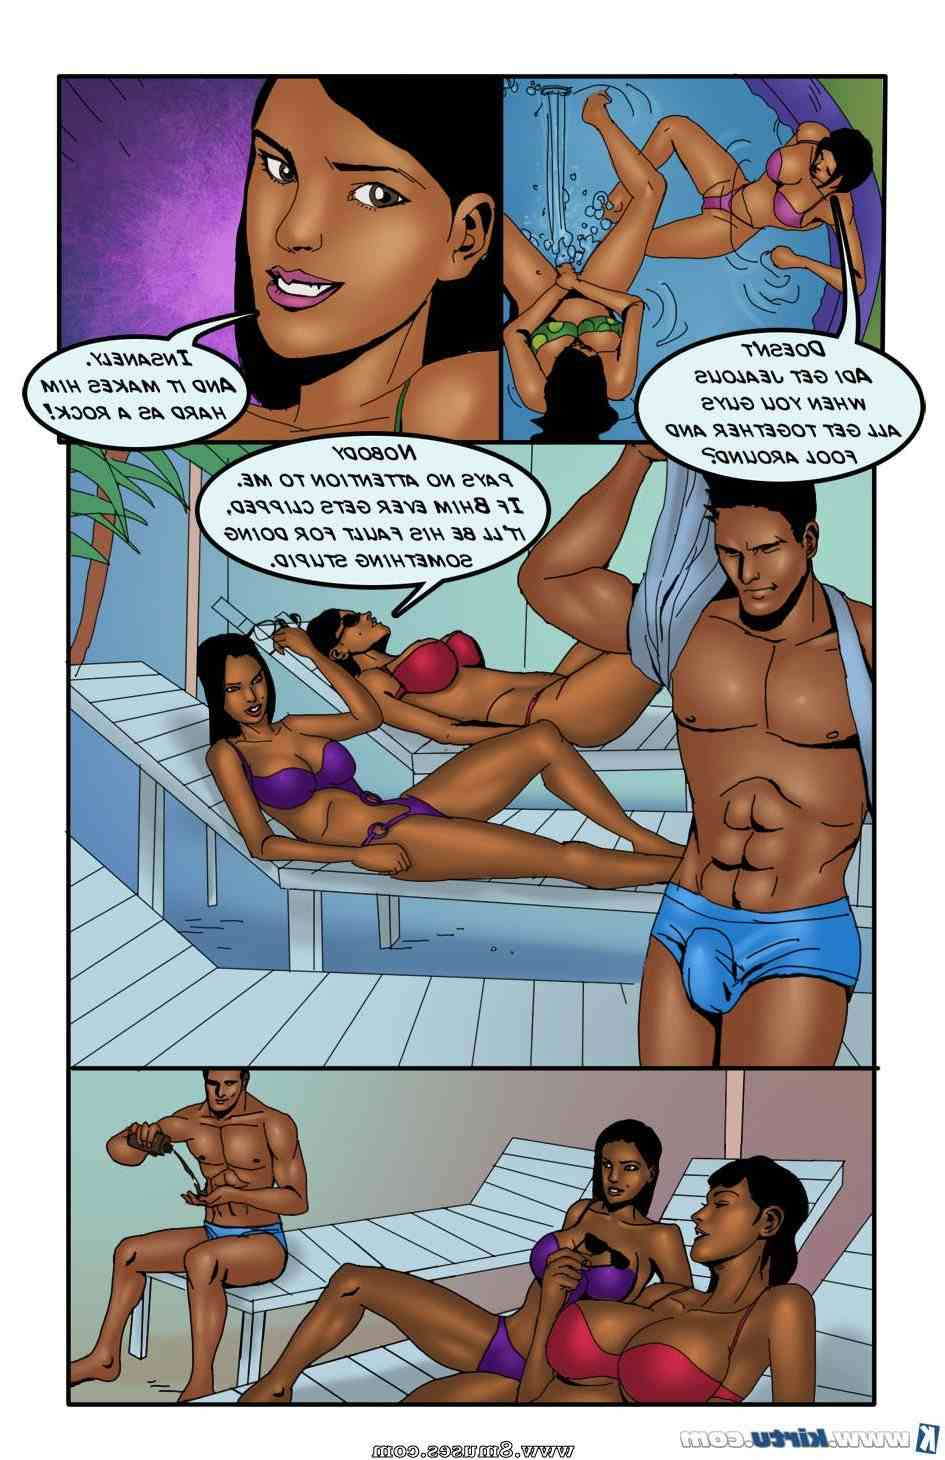 Kirtu_com-Comics/Saath-Kahaniya/Saath-Kahaniya-Episode-11-Double-or-Nothing Saath_Kahaniya_-_Episode_11_-_Double_or_Nothing__8muses_-_Sex_and_Porn_Comics_12.jpg